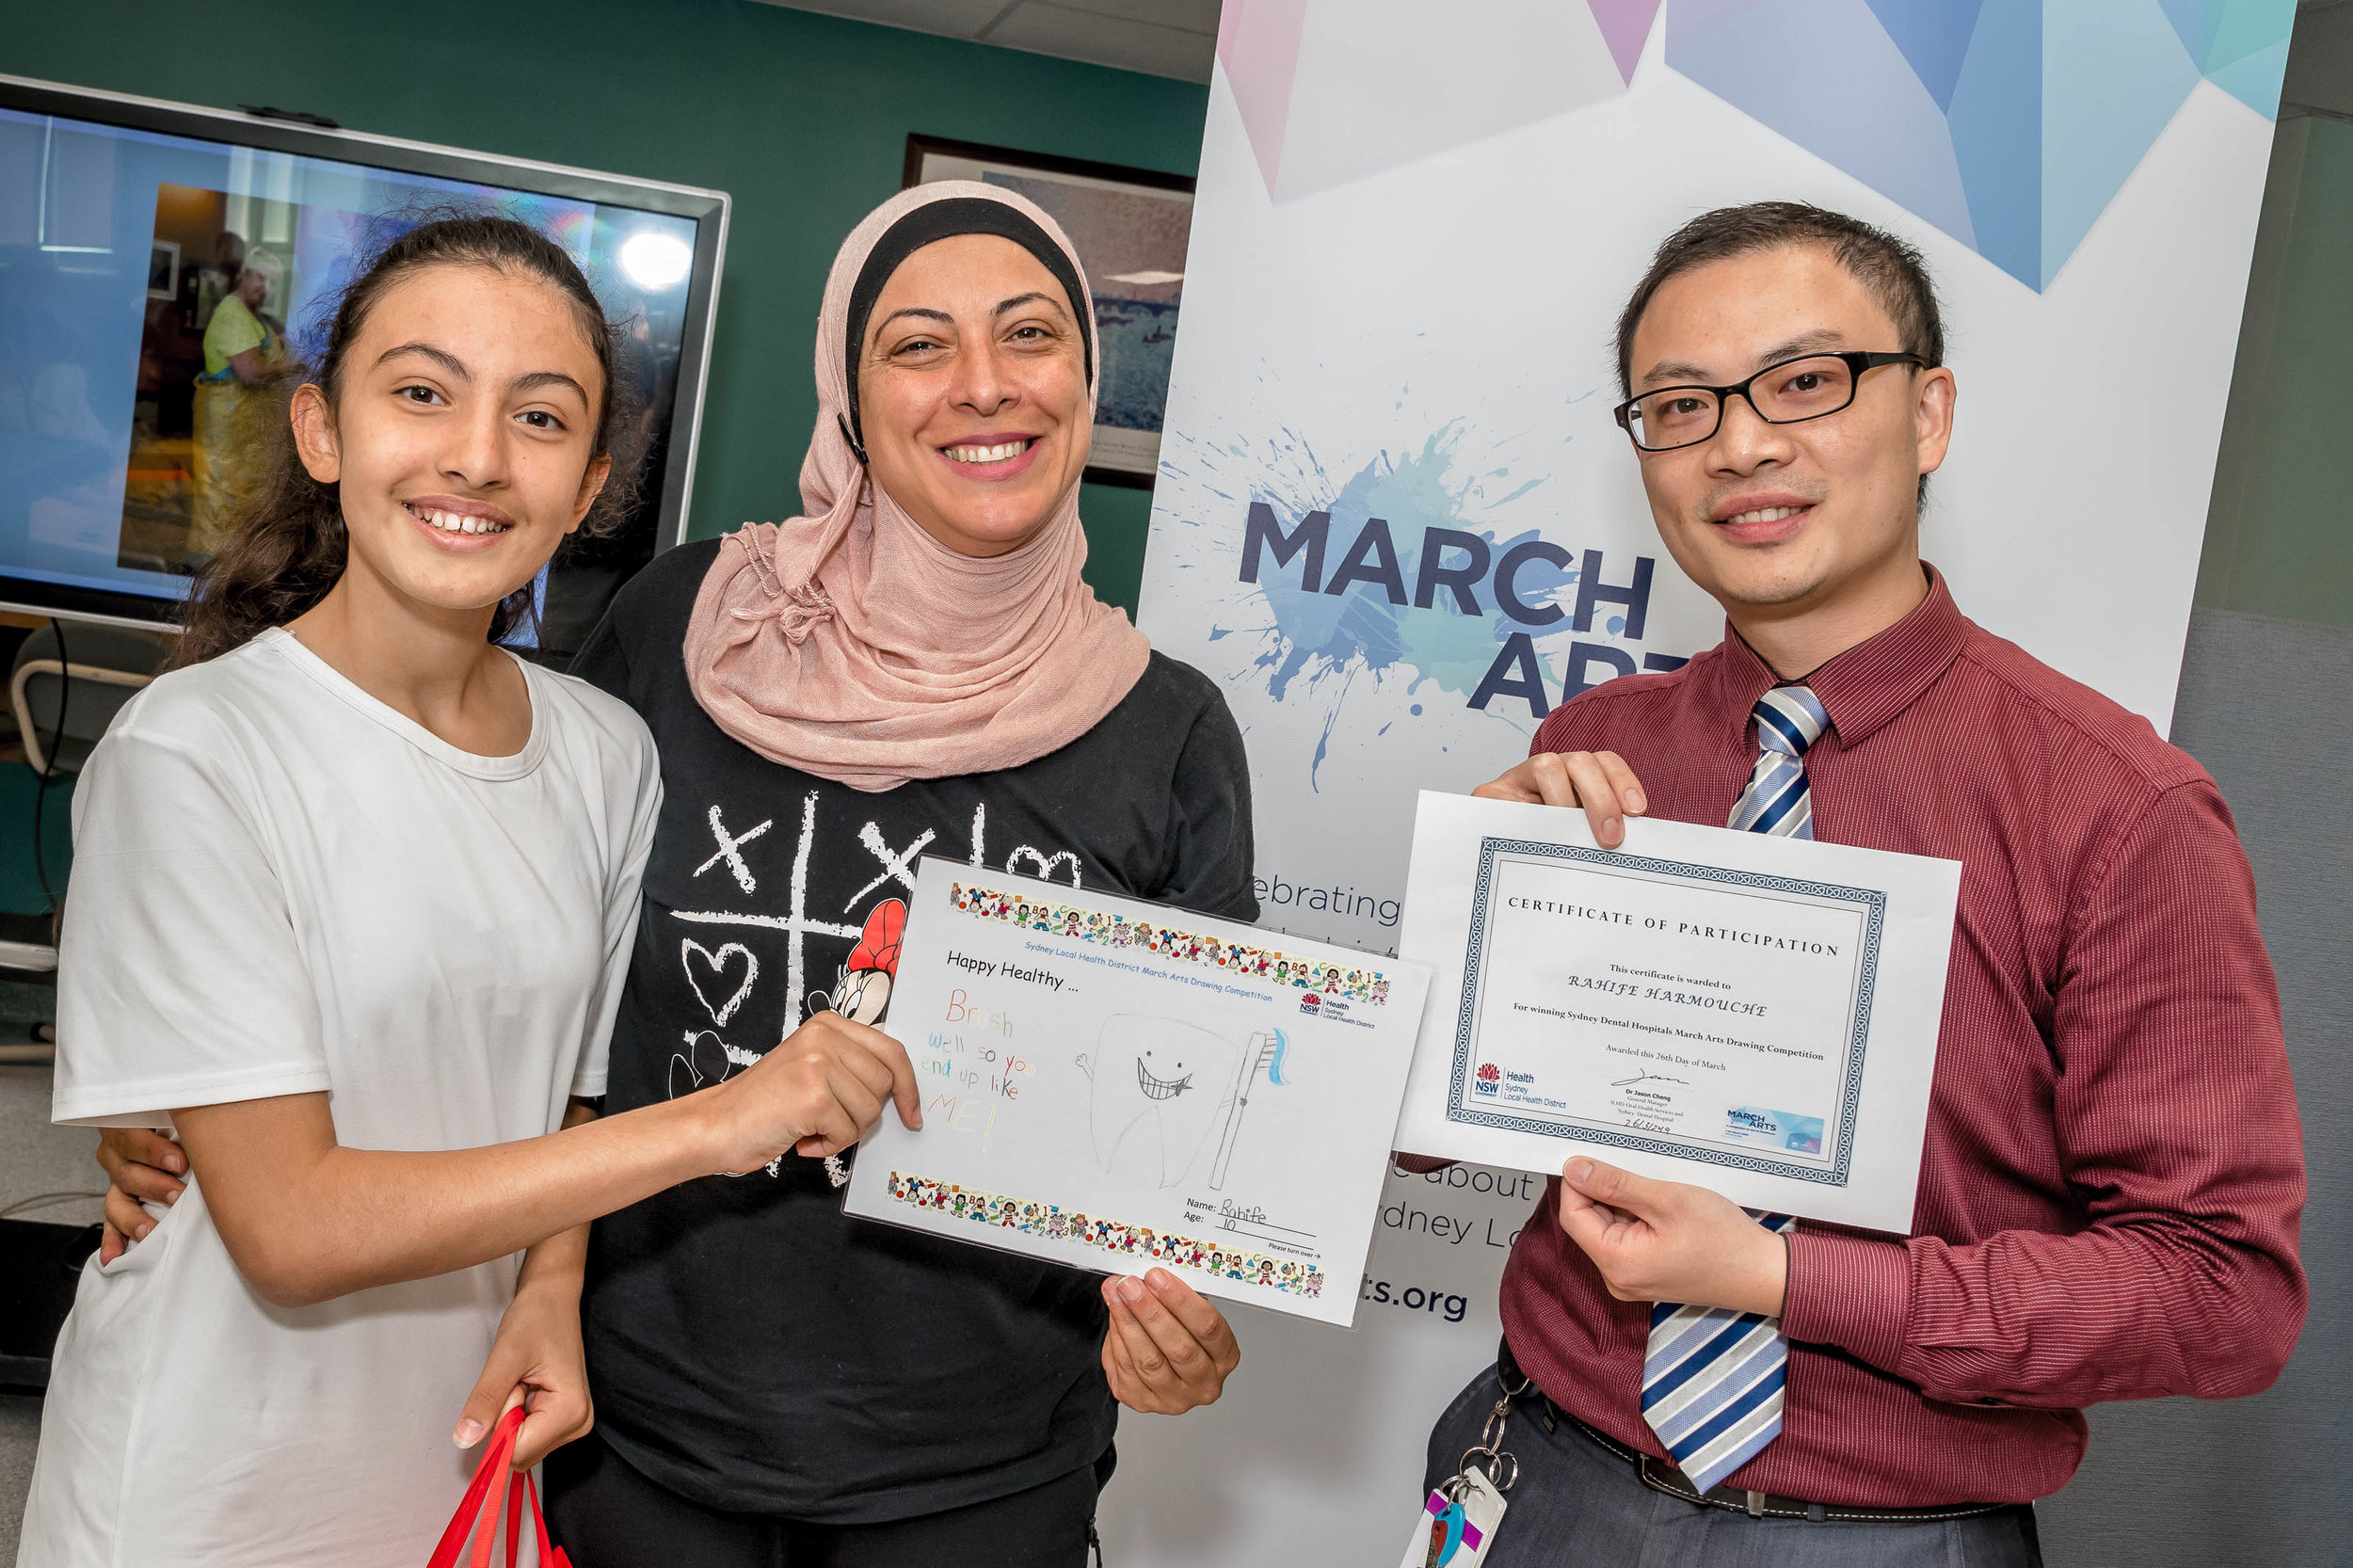 86365 March Arts Sydney Dental Hosp Colour Competition 20190326 WS2-231863.jpg